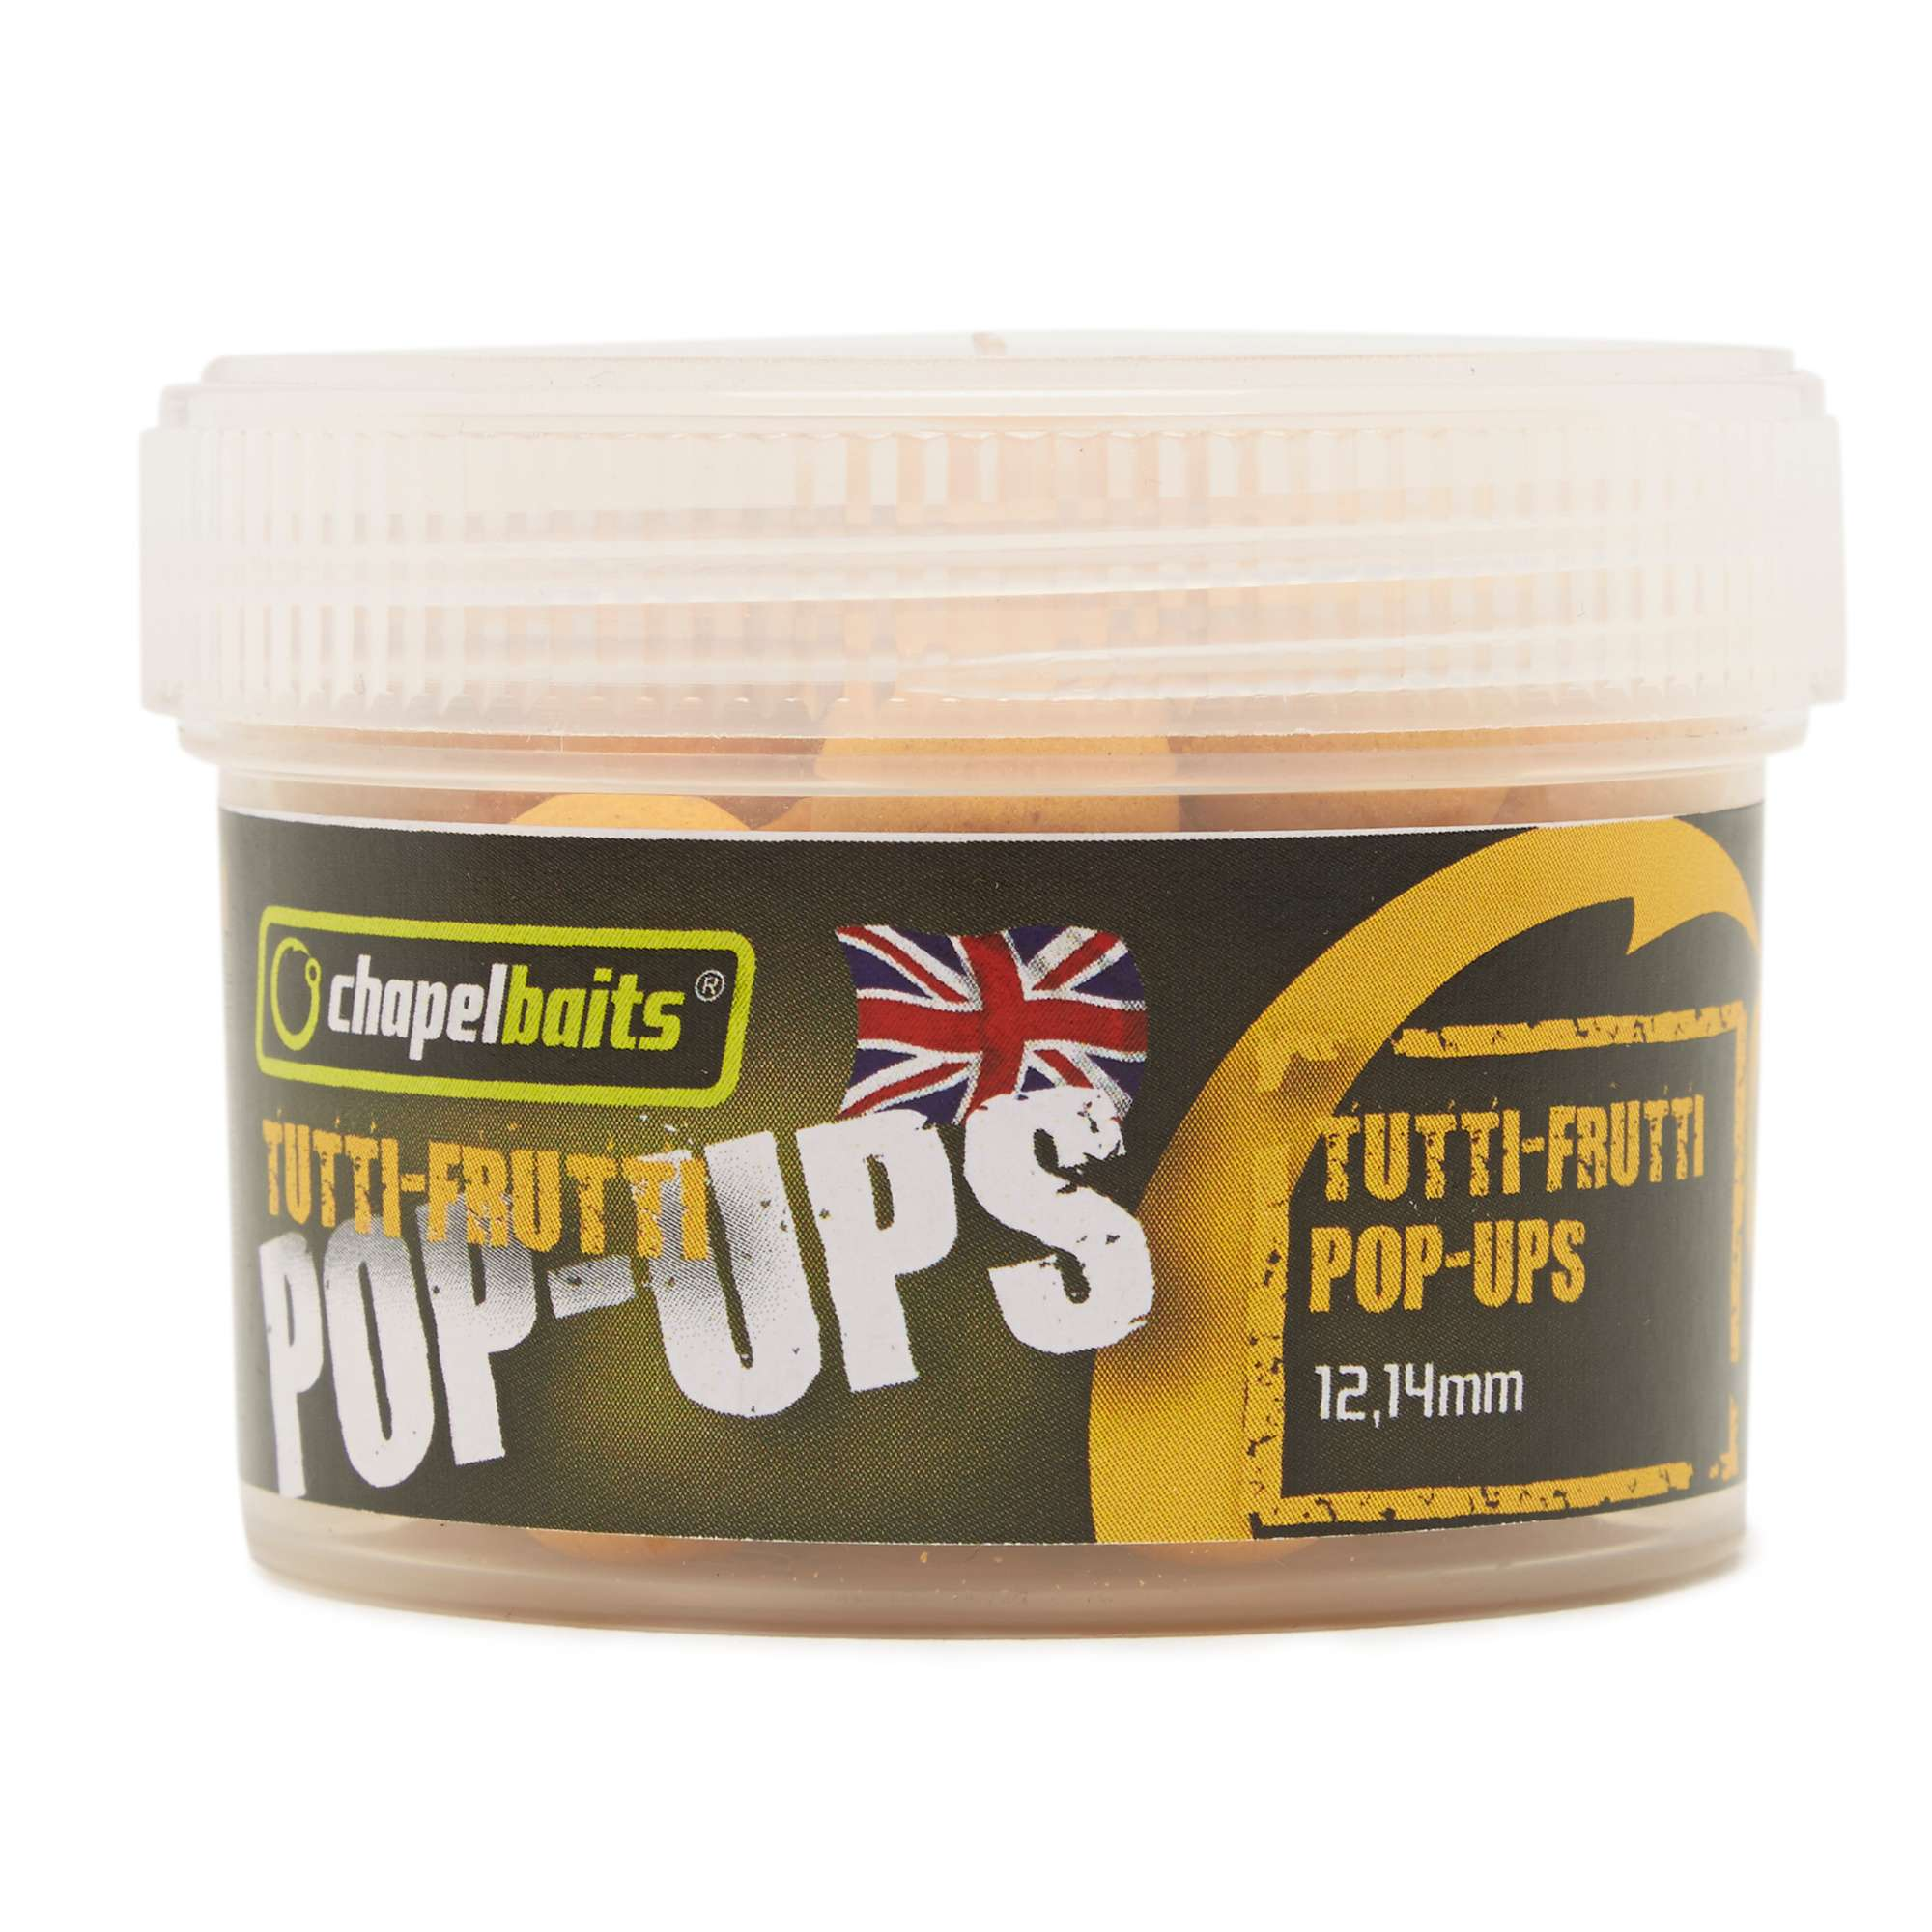 CHAPEL BAITS Tutti Fruitti Pop Ups Session Pack, 14mm